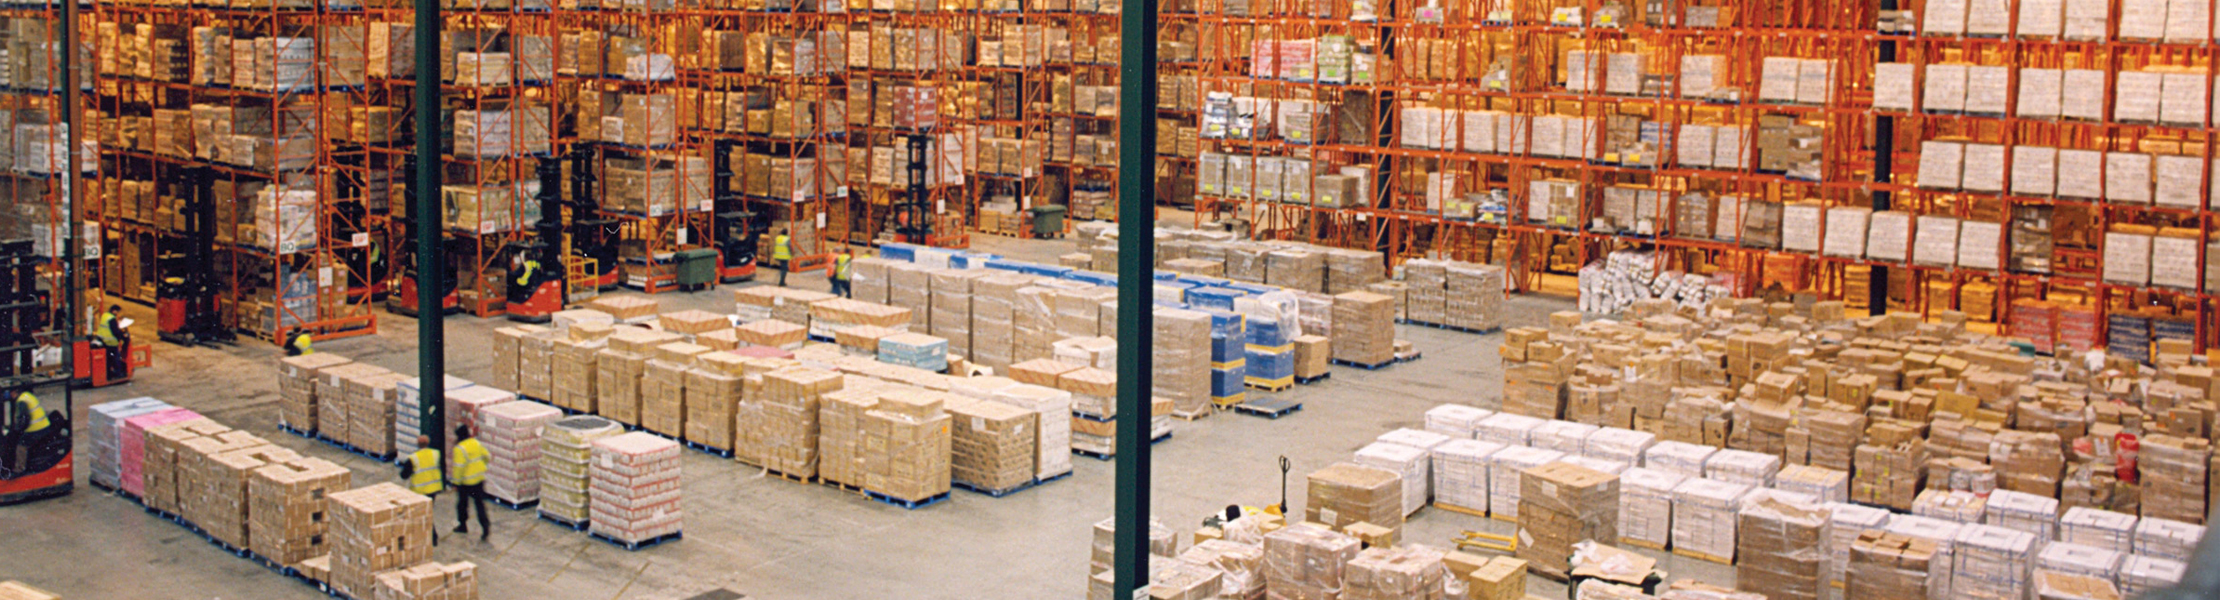 ecommerce warehouse shipping